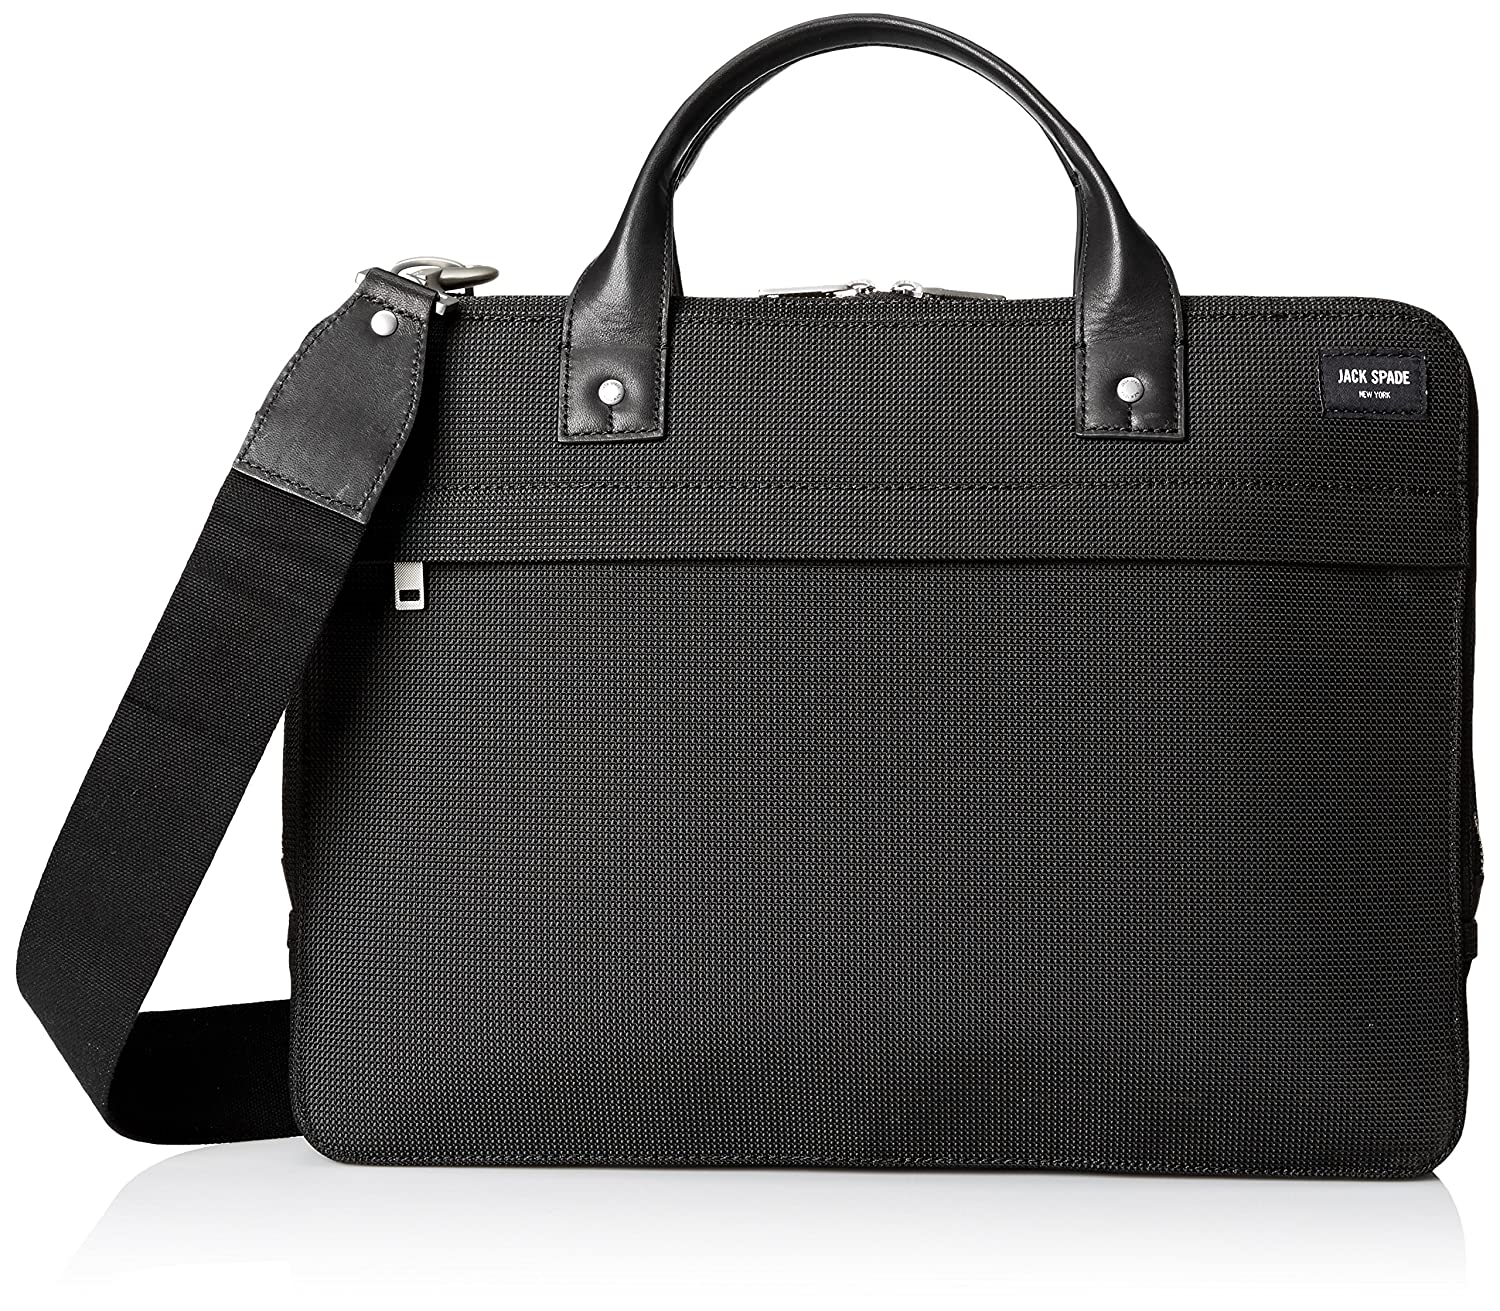 Atlantic computer a bundle of pricing options briefcase jack